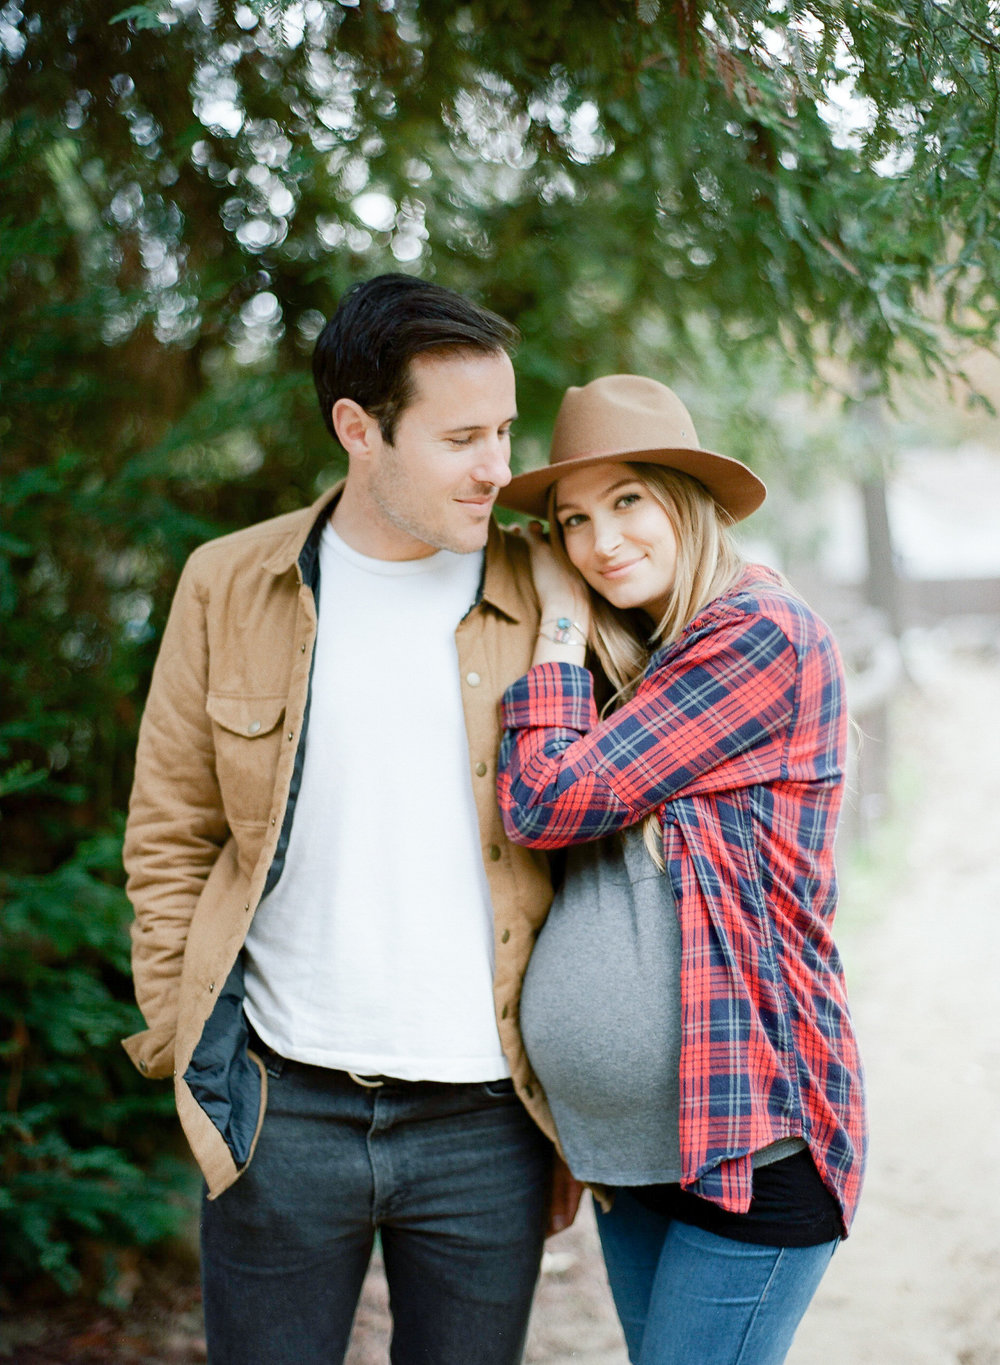 Chrissy & David Maternity Session-13.jpg